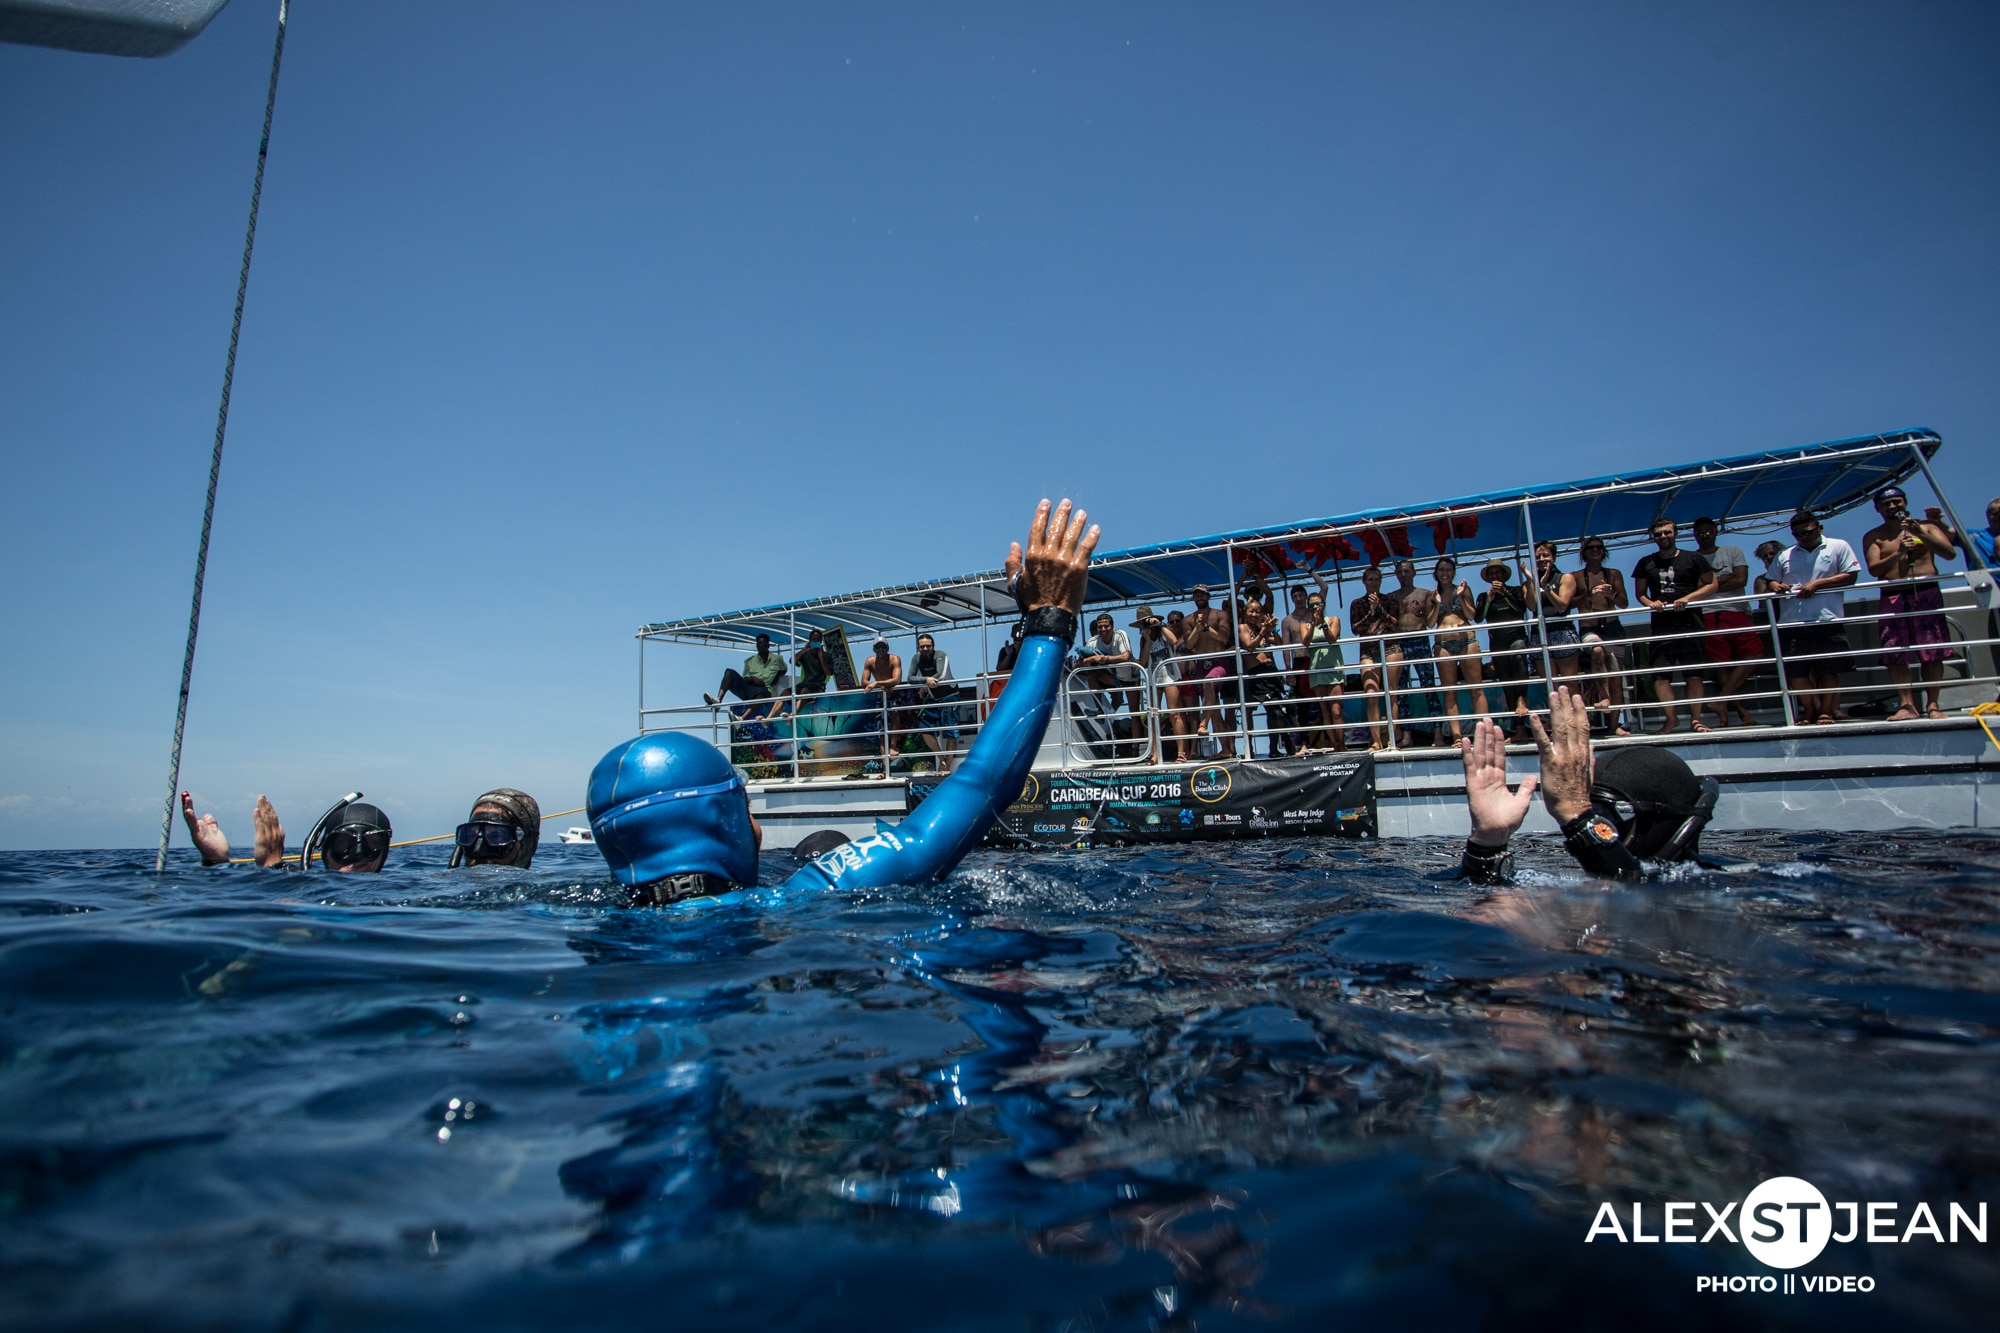 Davide Carrera (ITA) waves to the throng of spectators after his national record dive to 106m CWT.